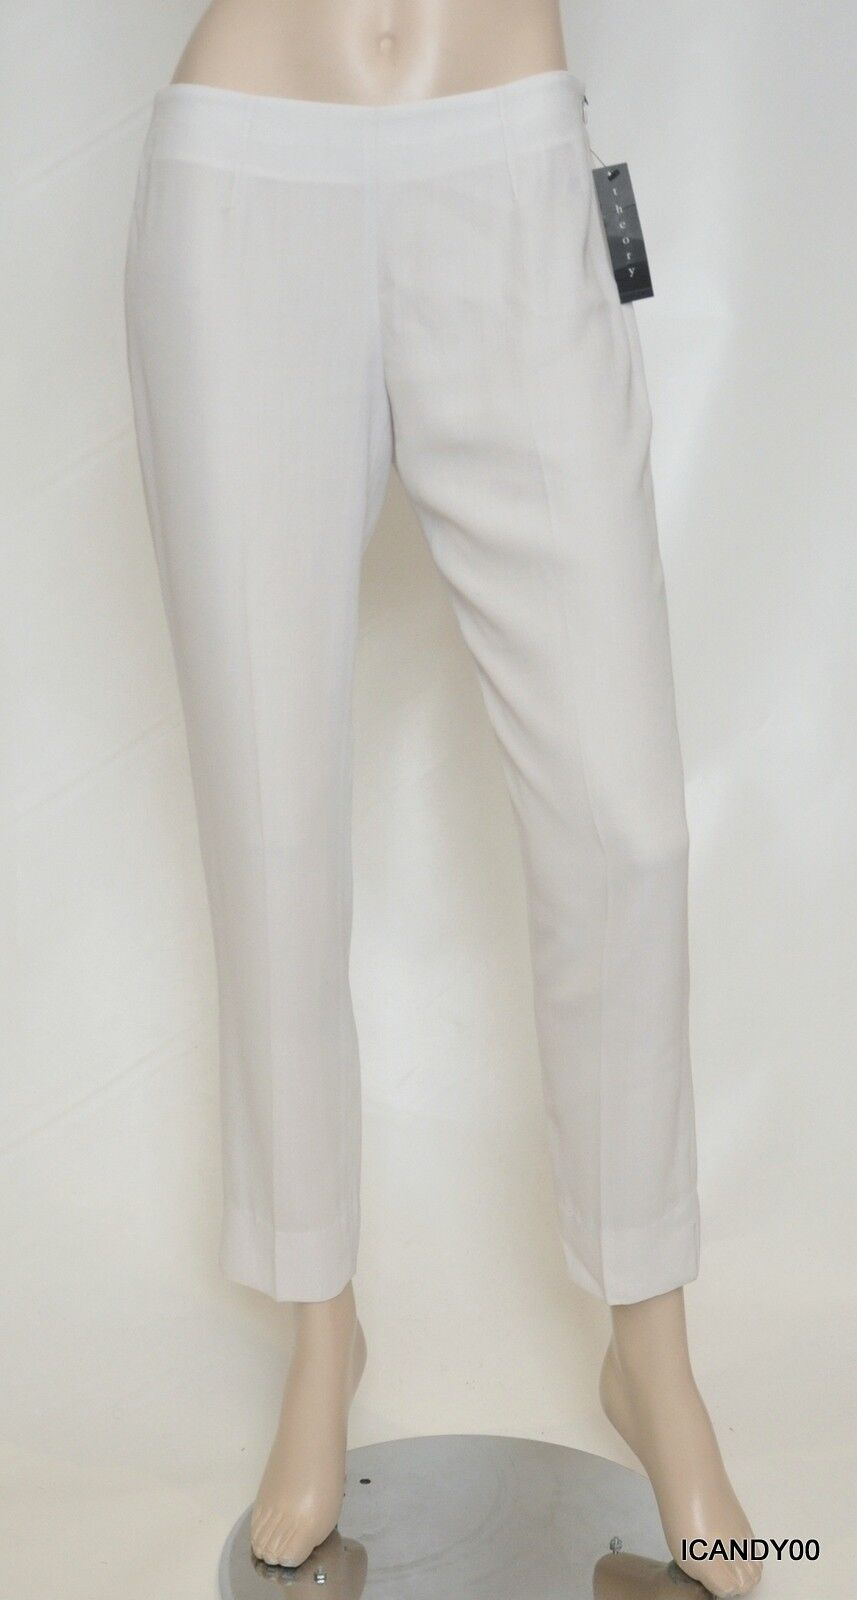 Nwt  270 Theory BELISA Hydric Crepe Wool Blend Crave Slim Pants Trouser Ivory 8